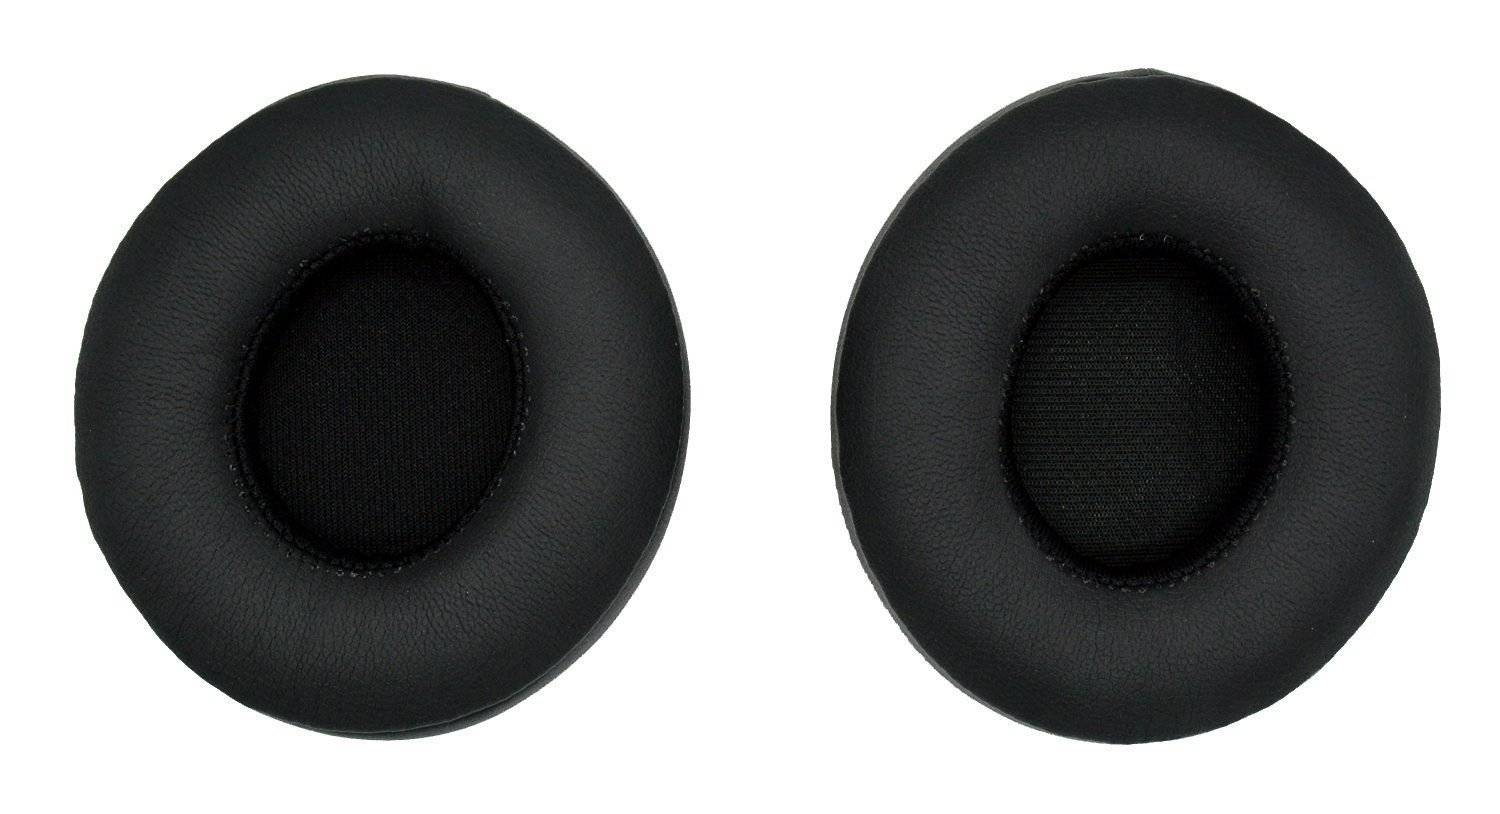 Youzel Replacement Ear Pad/Ear Cushion/Ear Cups/Ear Cover/Earpads Repair Parts for Beats by Dr. Dre Solo2, Solo 2.0 On-Ear Wired Headphones (Black)